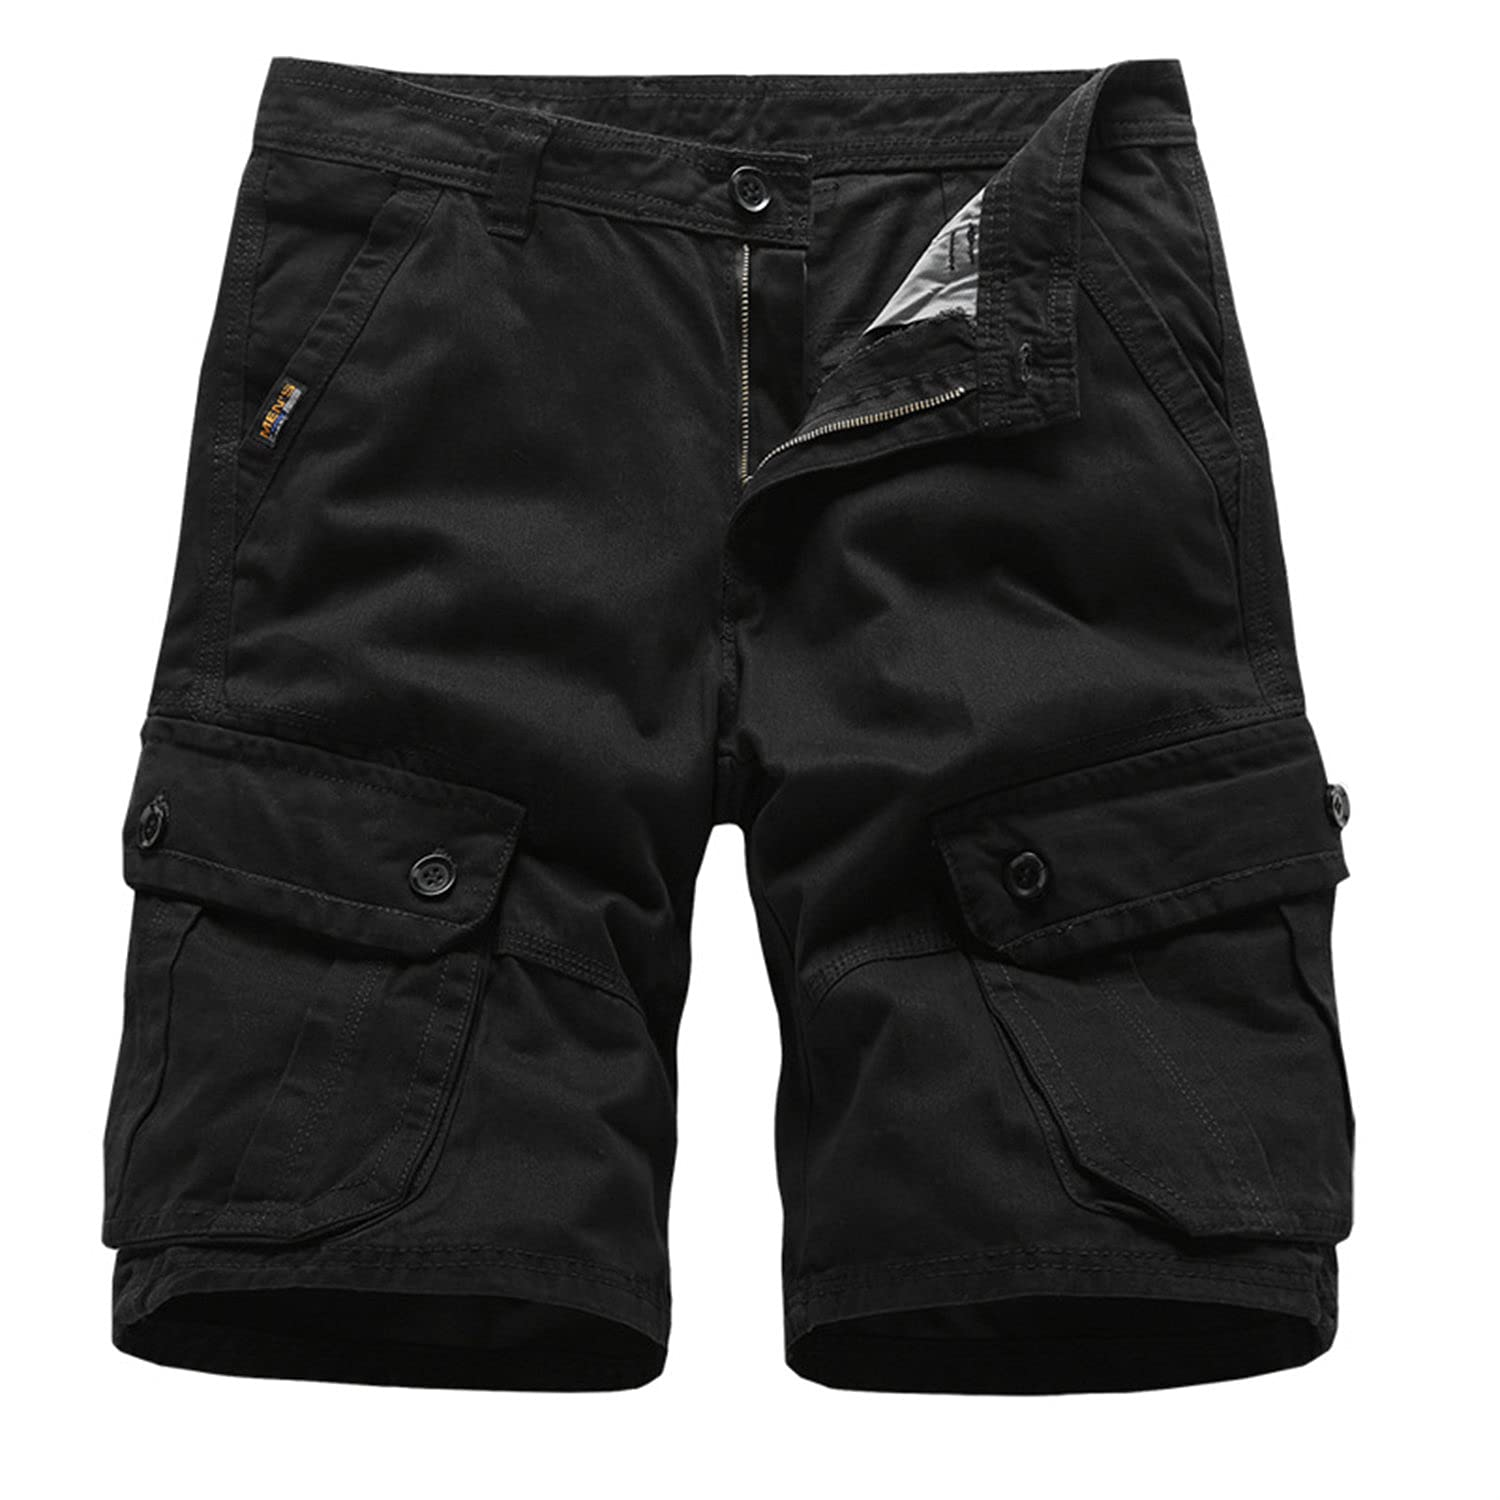 Men's Cargo Work Shorts Casual Cotton Relaxed Fit S Cheap mail Max 85% OFF order specialty store Multi Pocket